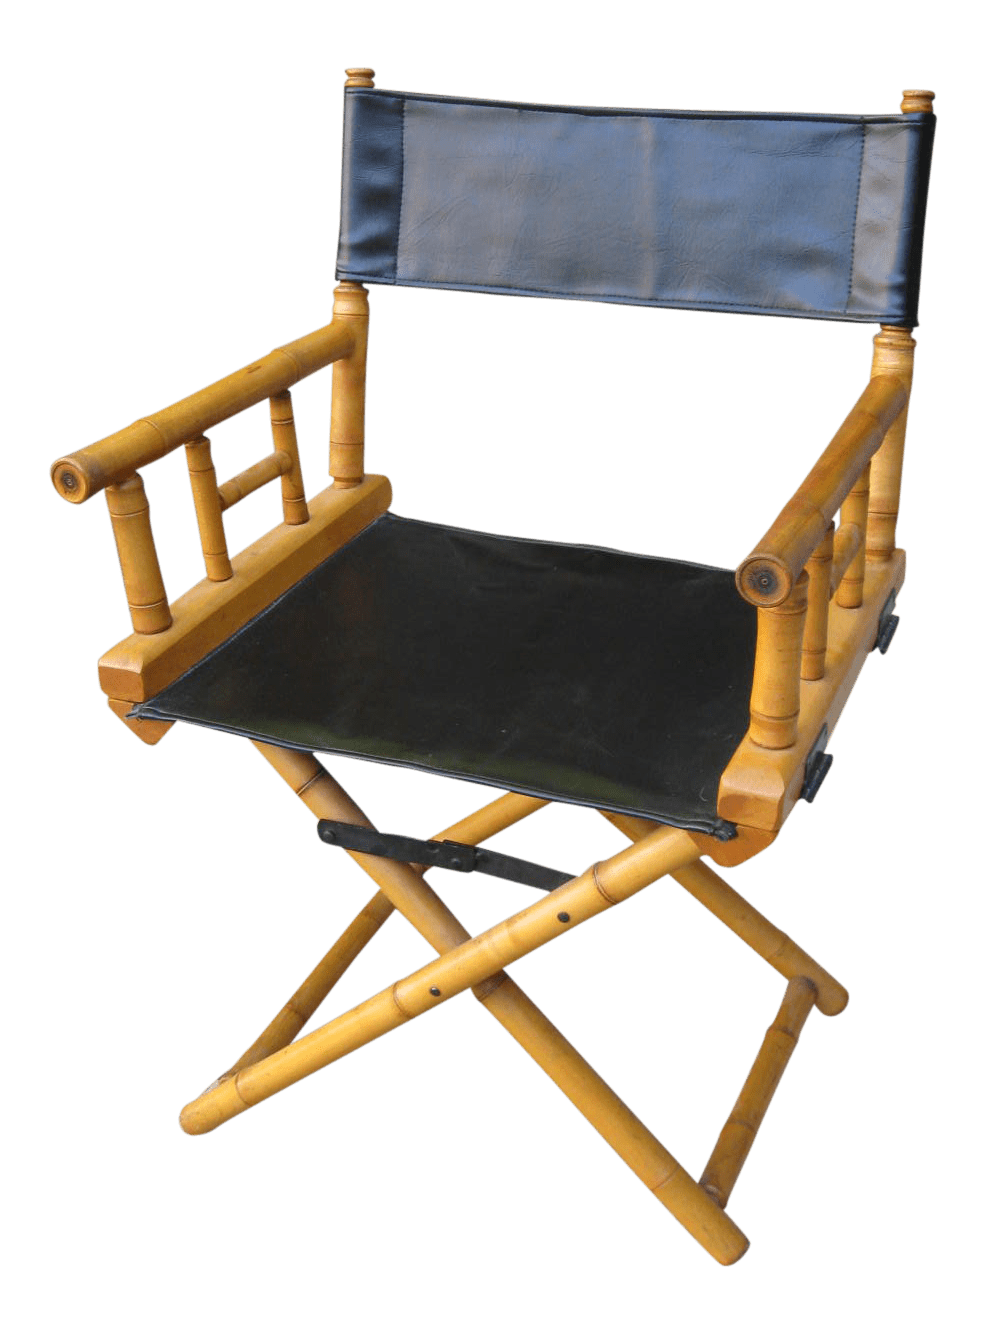 leather directors chair nichols and stone windsor 1960s vintage bamboo folding director s chairish